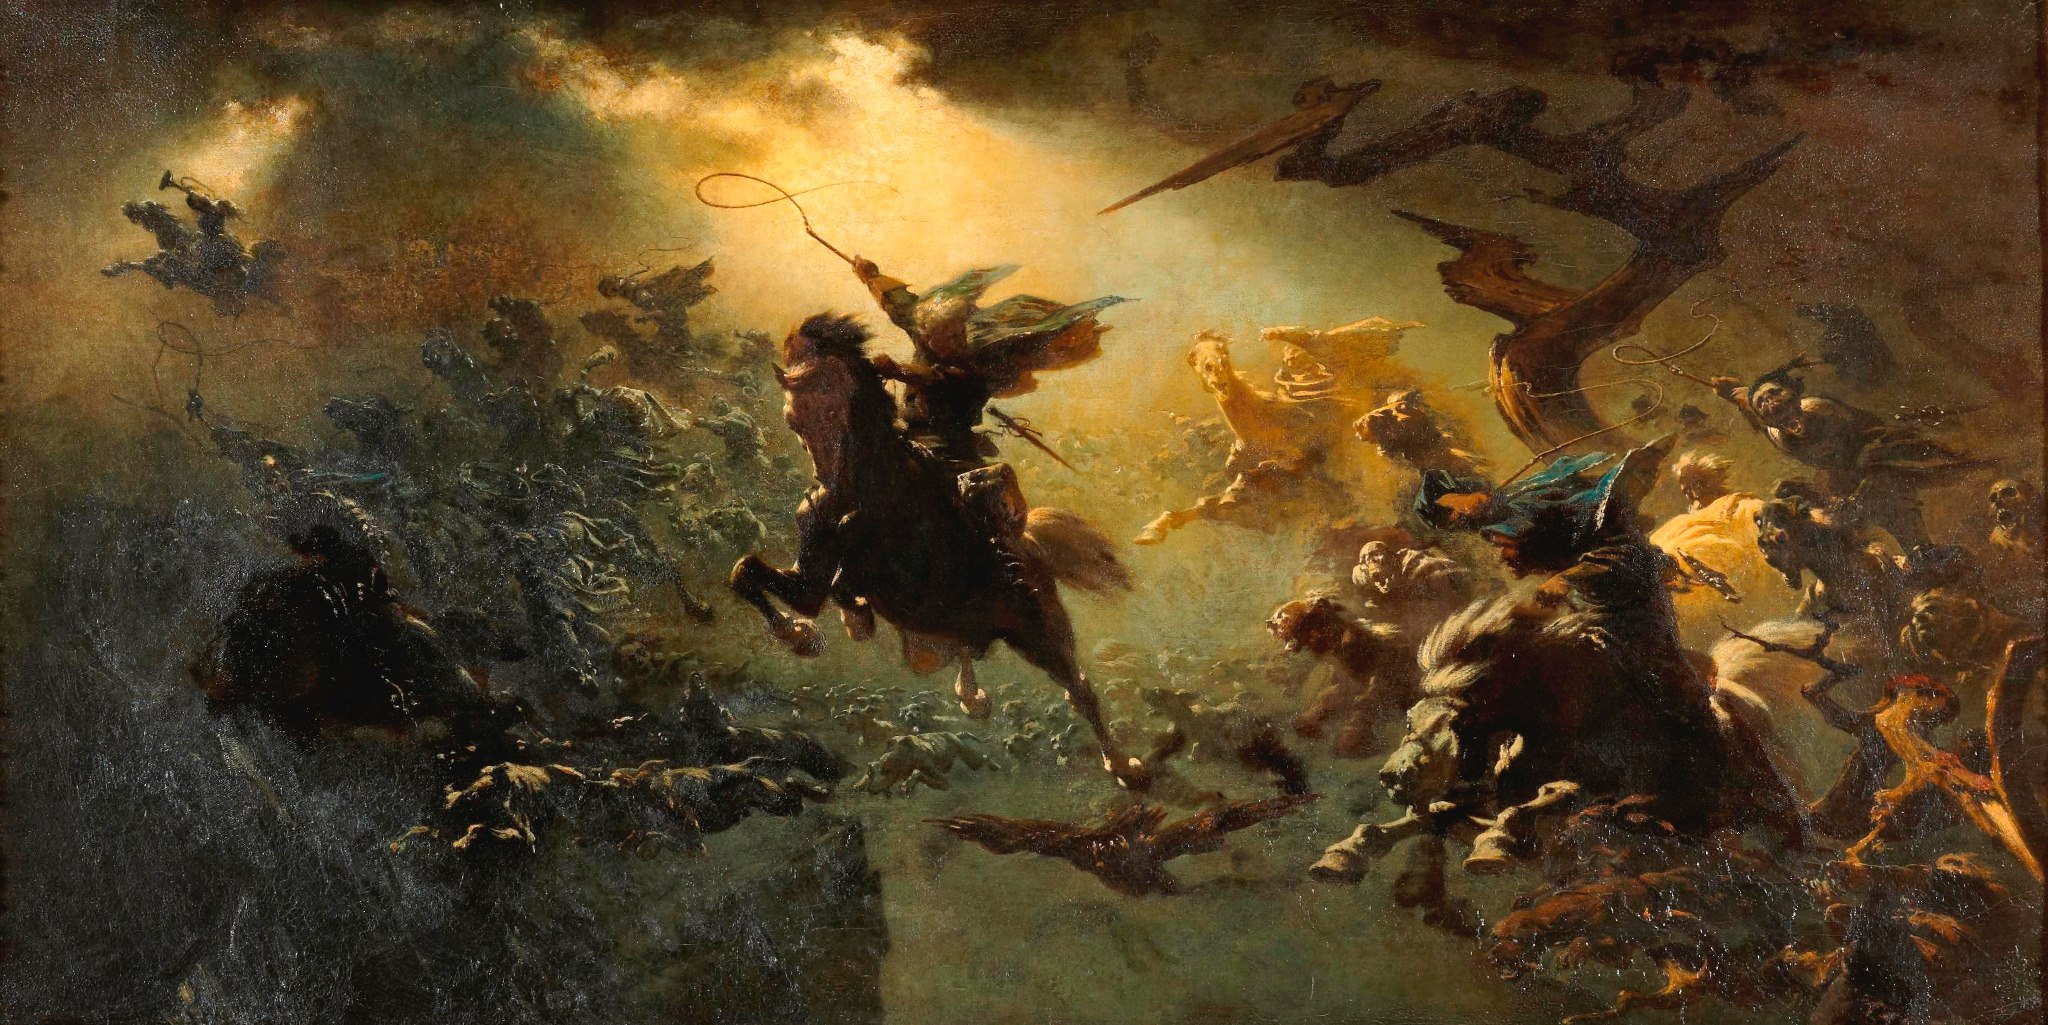 The Wild Hunt  by Johann Wilhelm Cordes, 1857